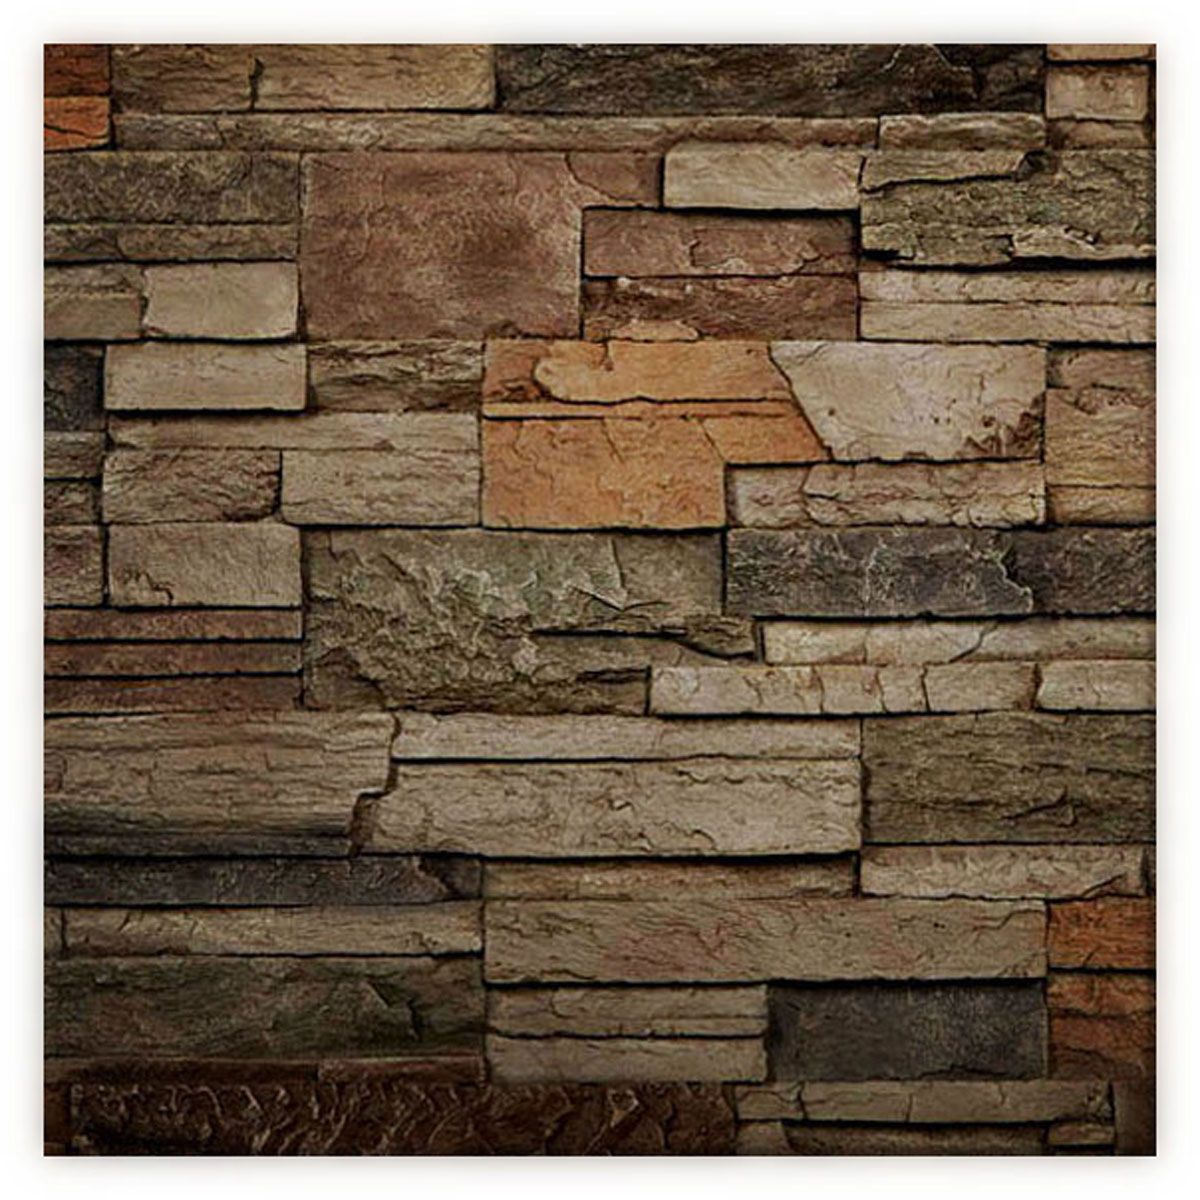 8 Inch W X 10 Inch H Dry Stack Endurathane Faux Stone Siding Panel Sample Terrastone Faux Stone Siding Stone Siding Stone Siding Panels